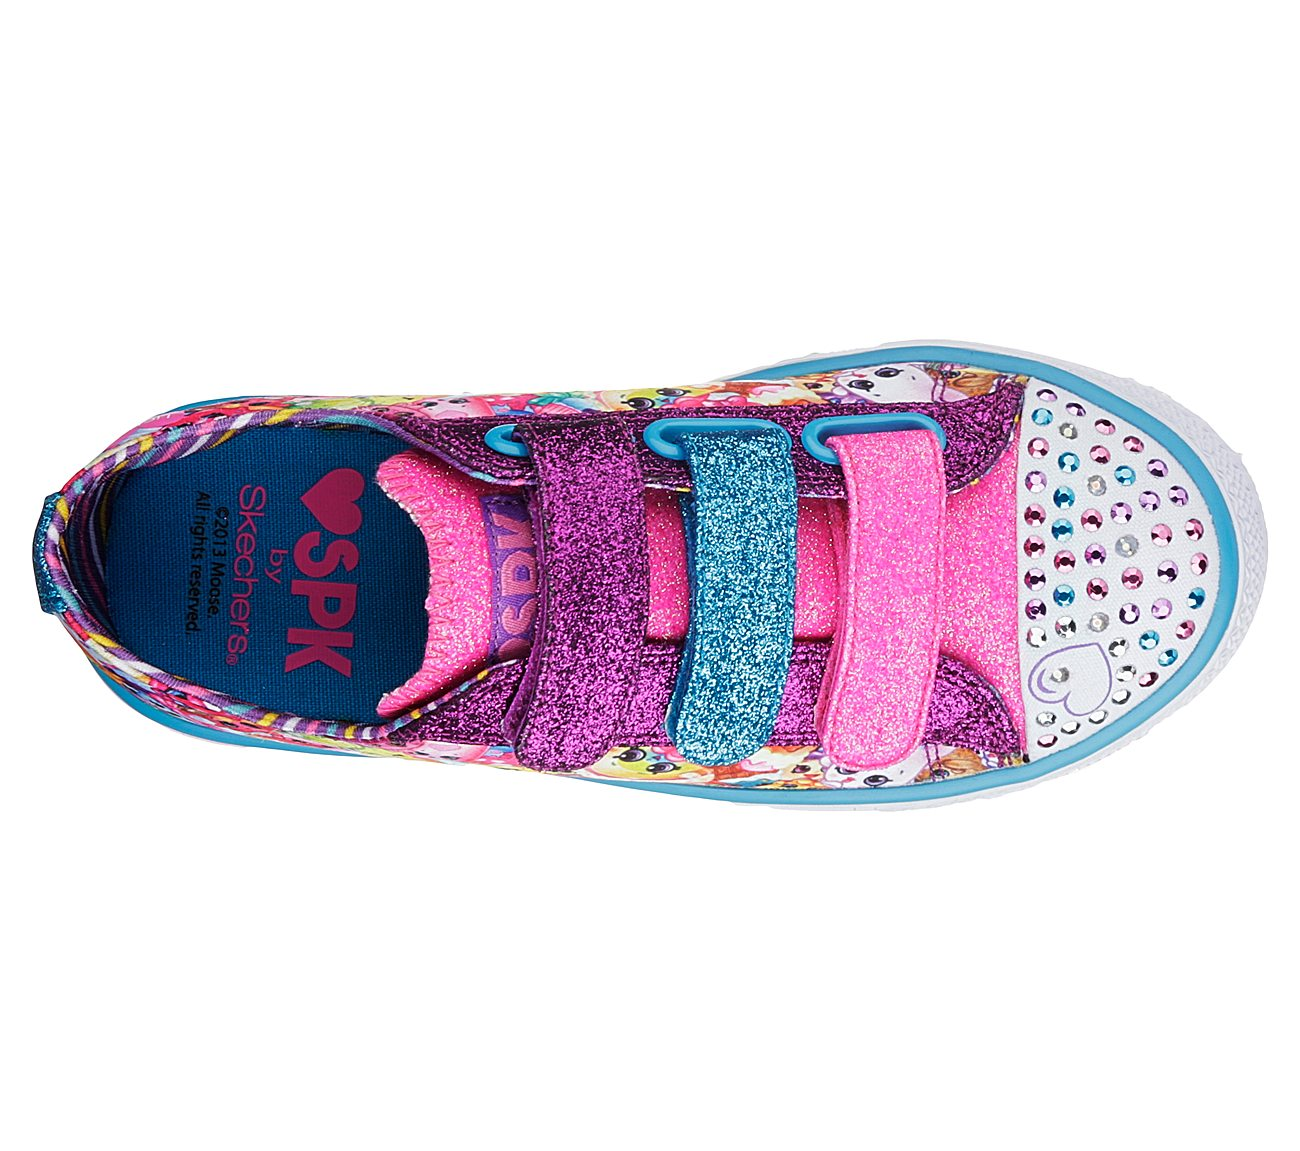 692fdb9faf19 Buy SKECHERS Shopkins  Shuffles - Rainbow Bite Exclusives Shoes only ...